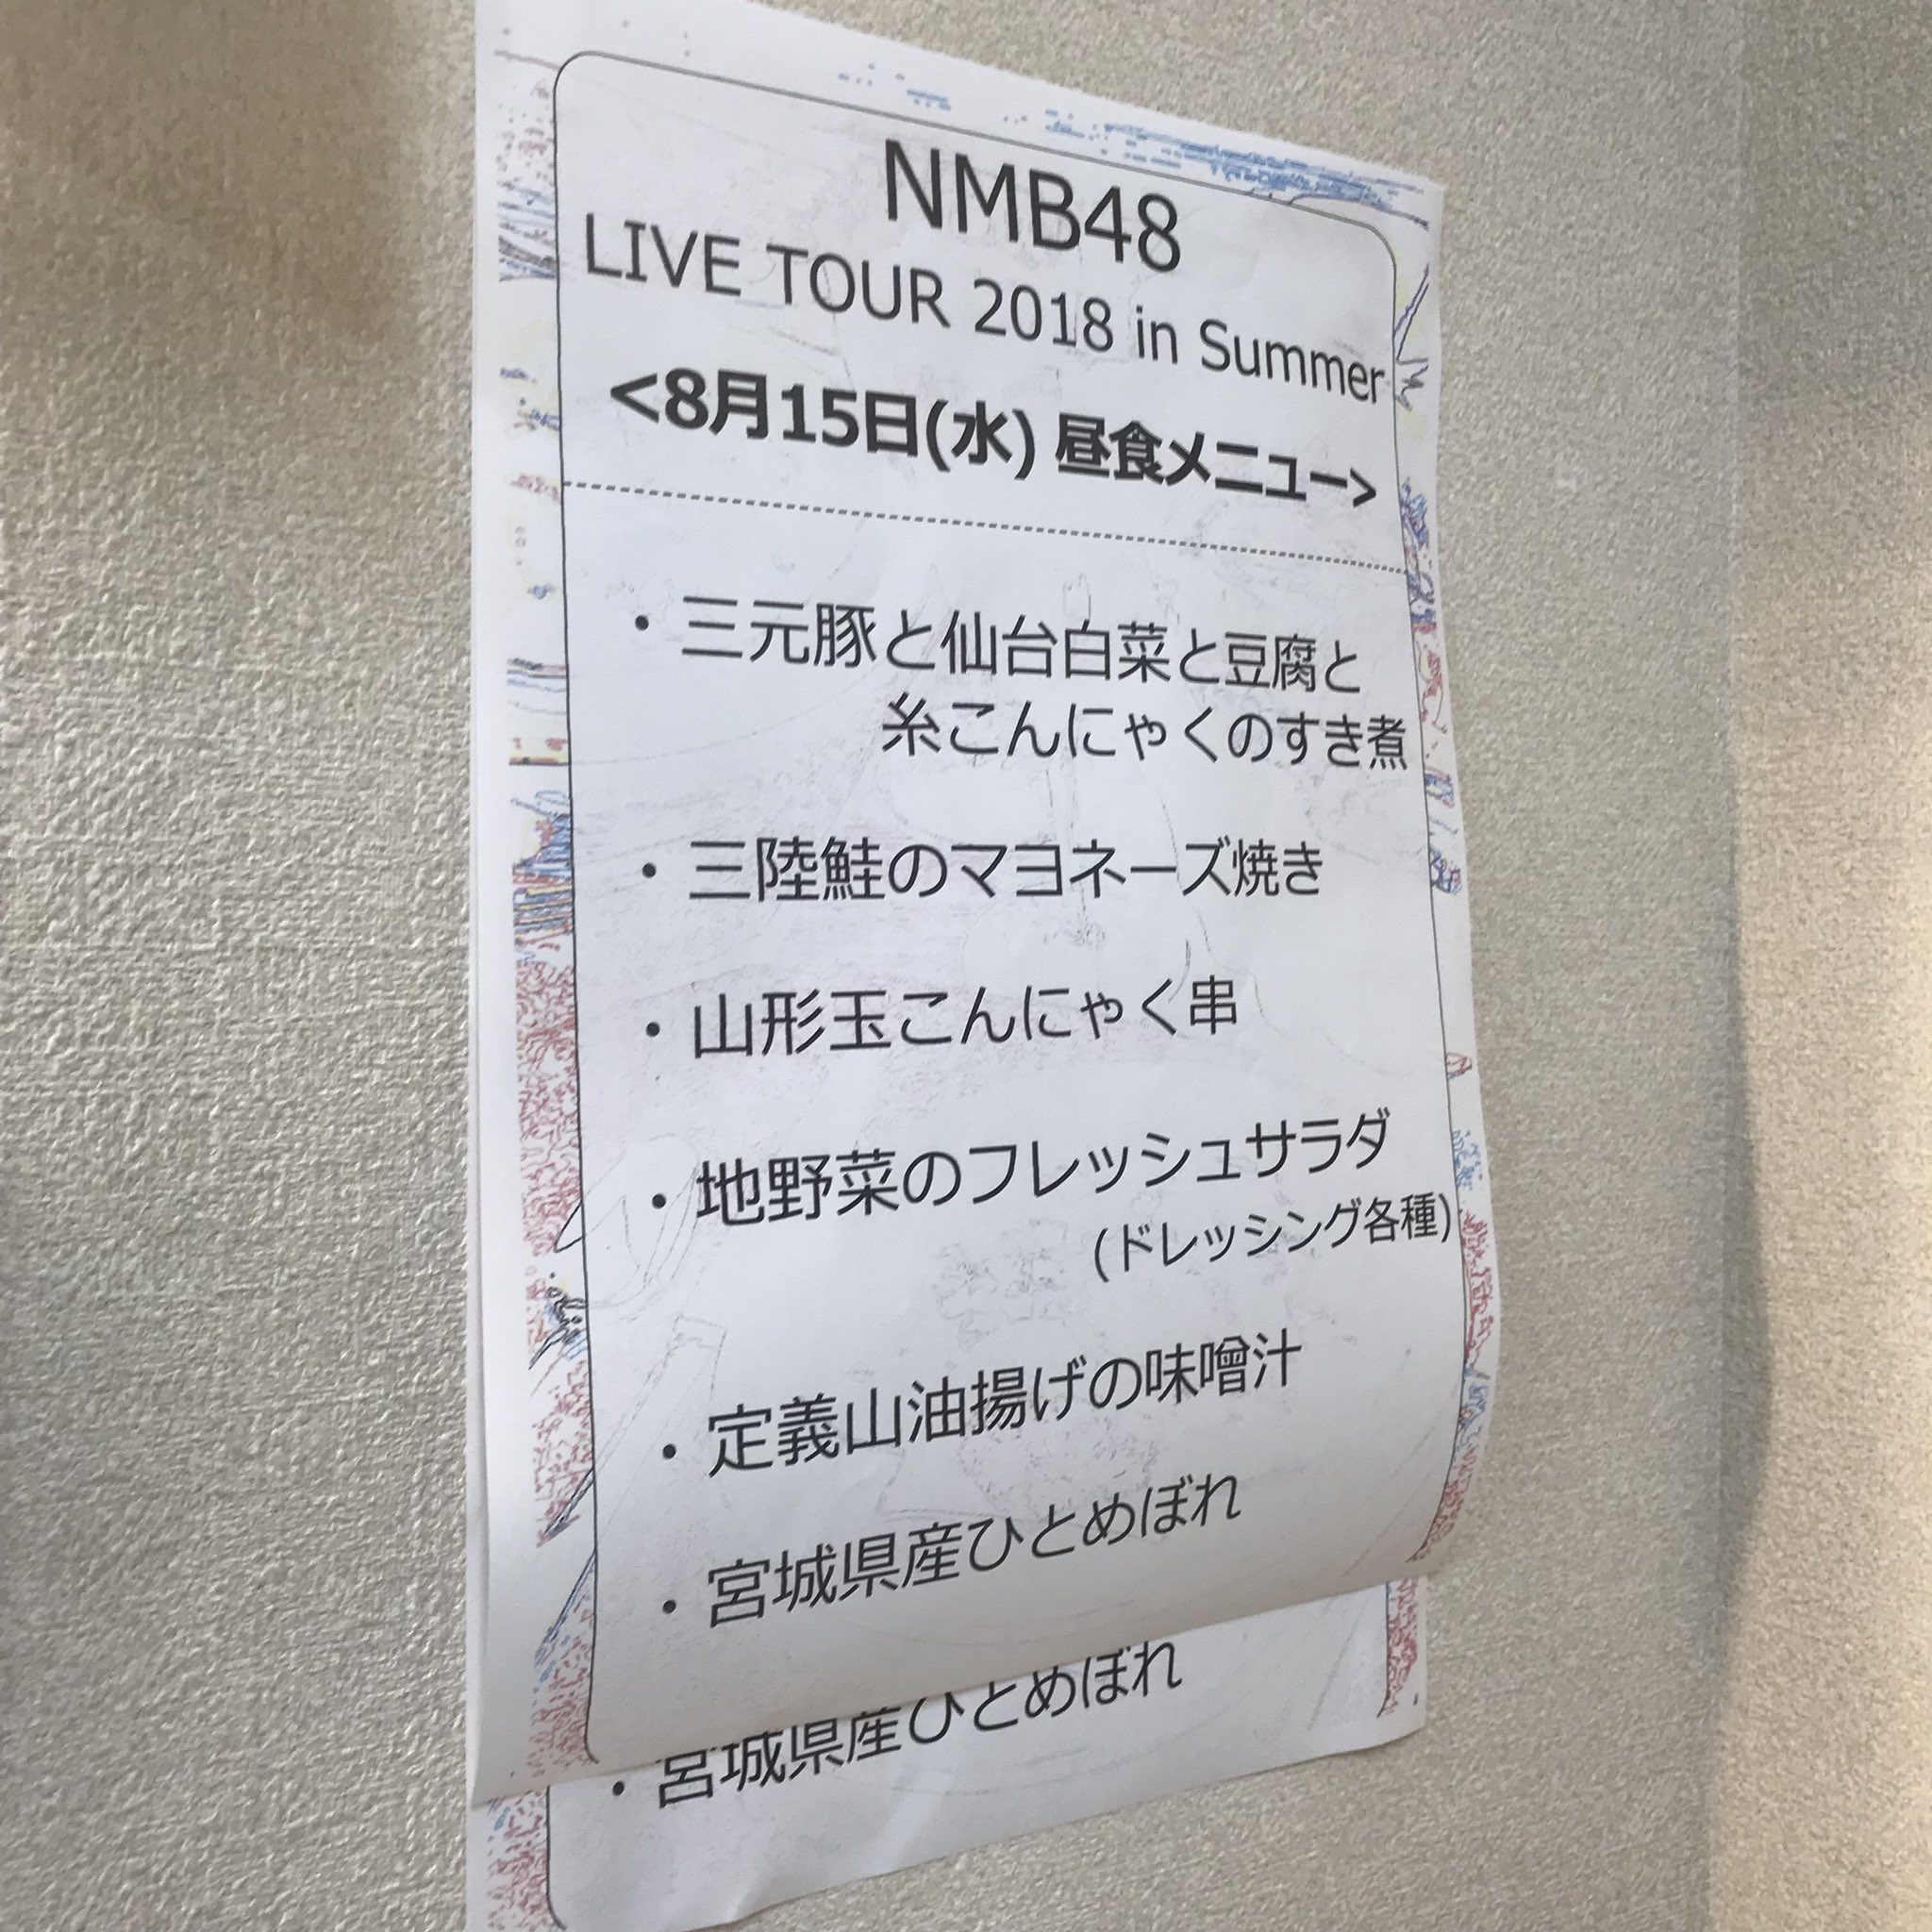 NMB48 LIVE TOUR 2018 in Summer・仙台-006